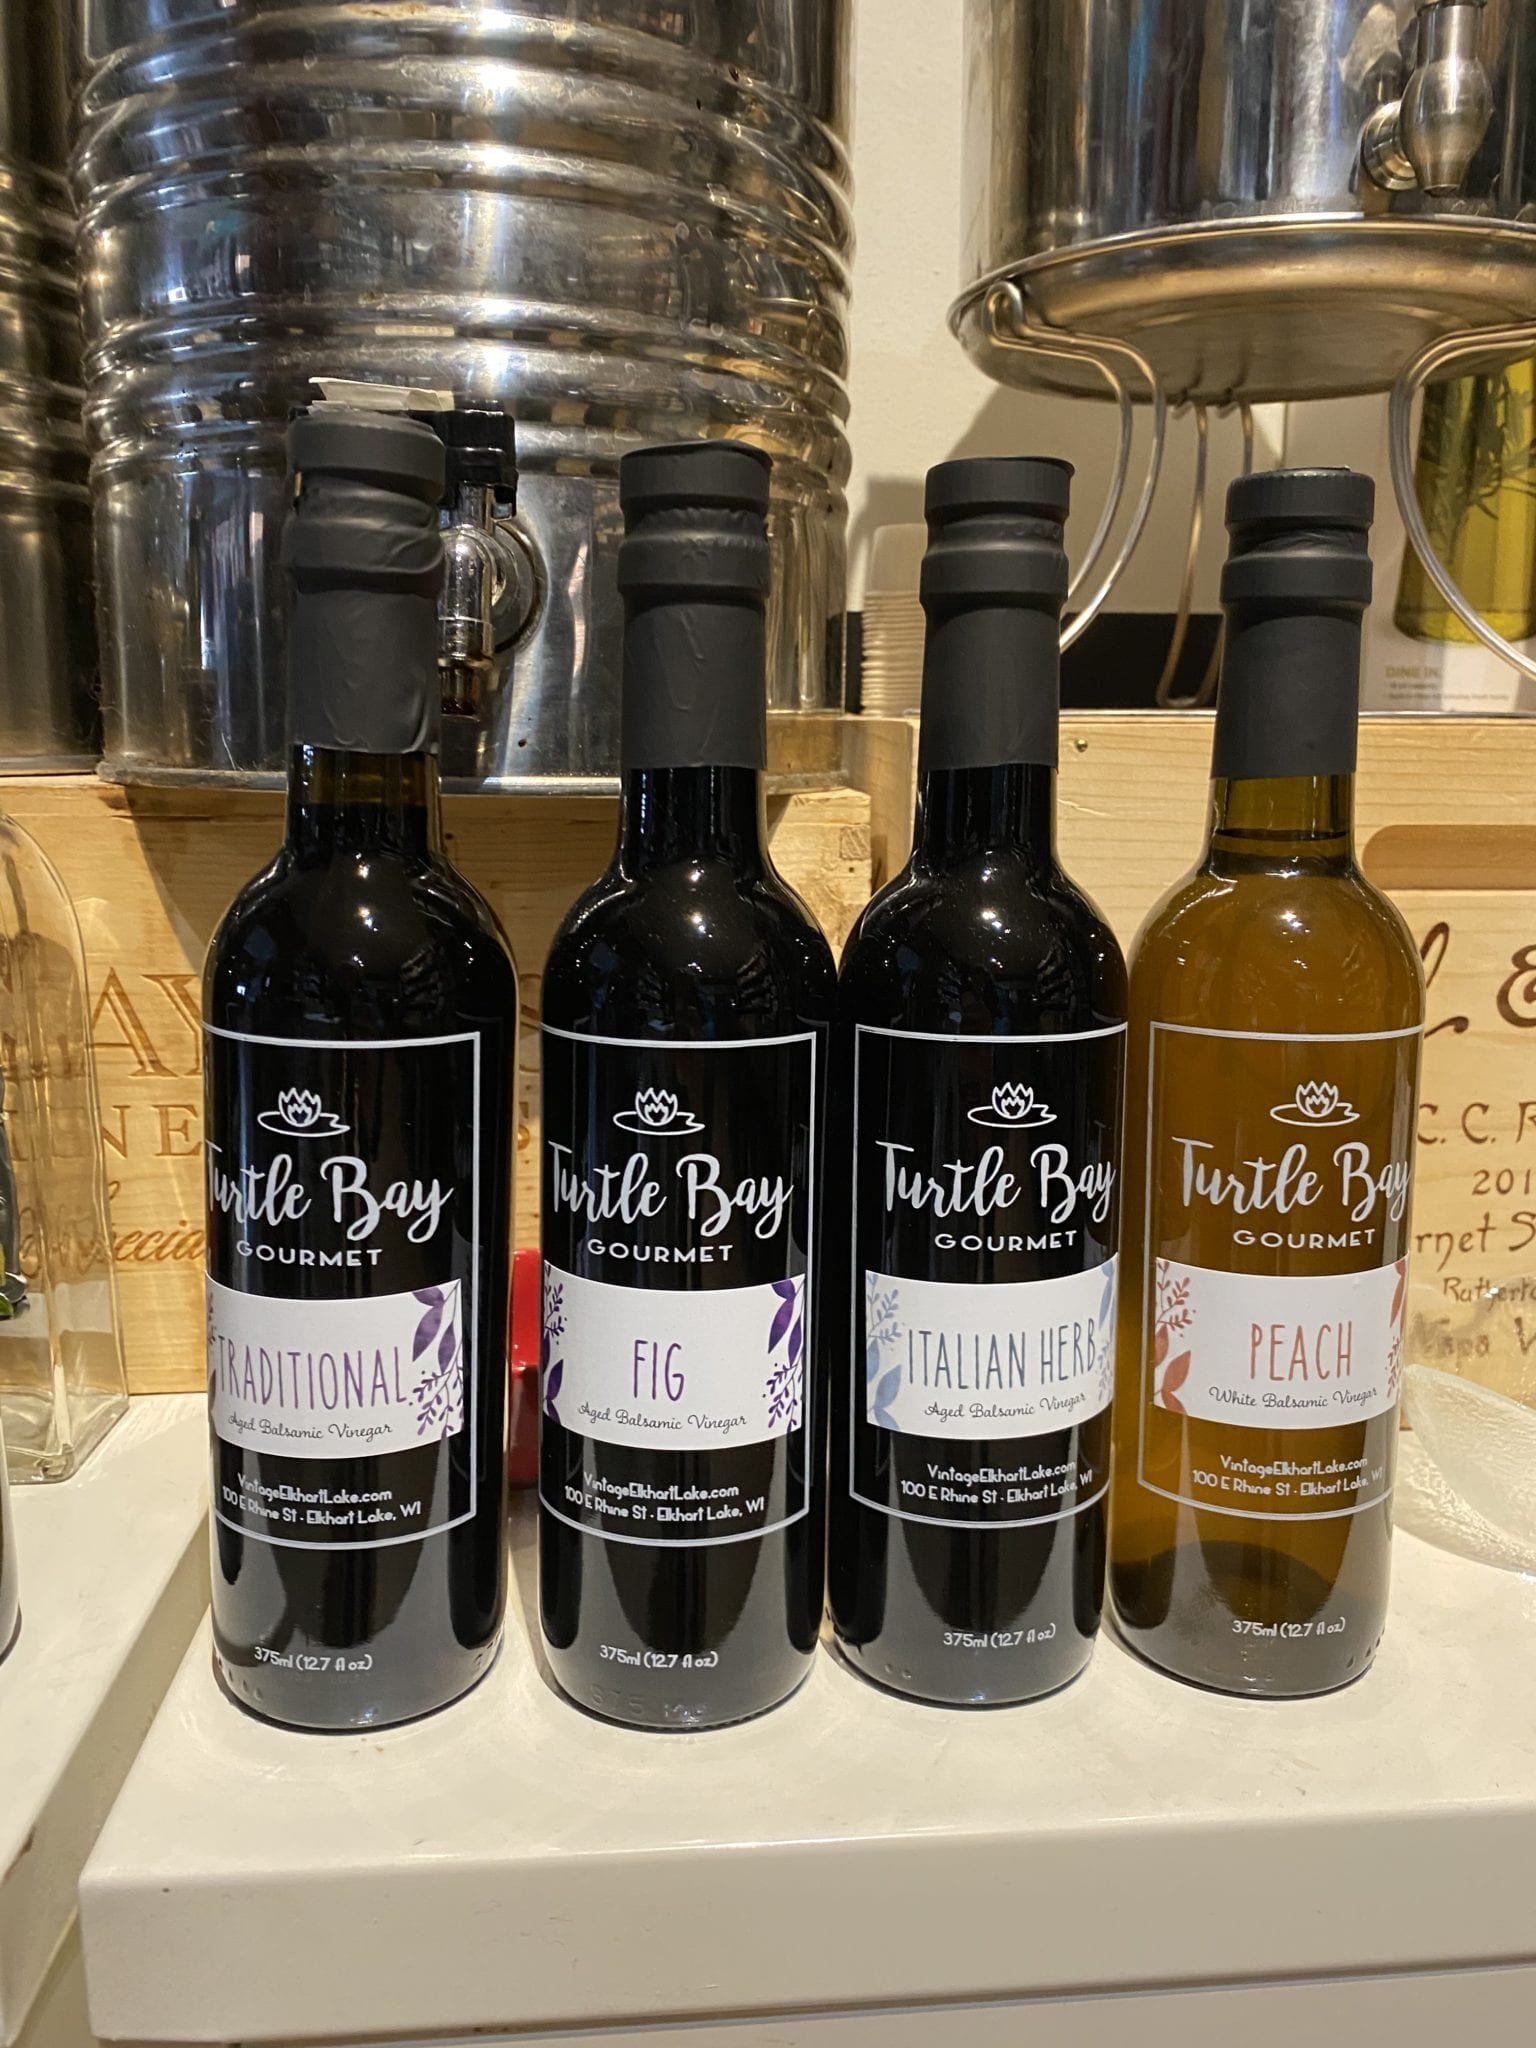 Turtle Bay Gourmet Peach White Balsamic Vinegar